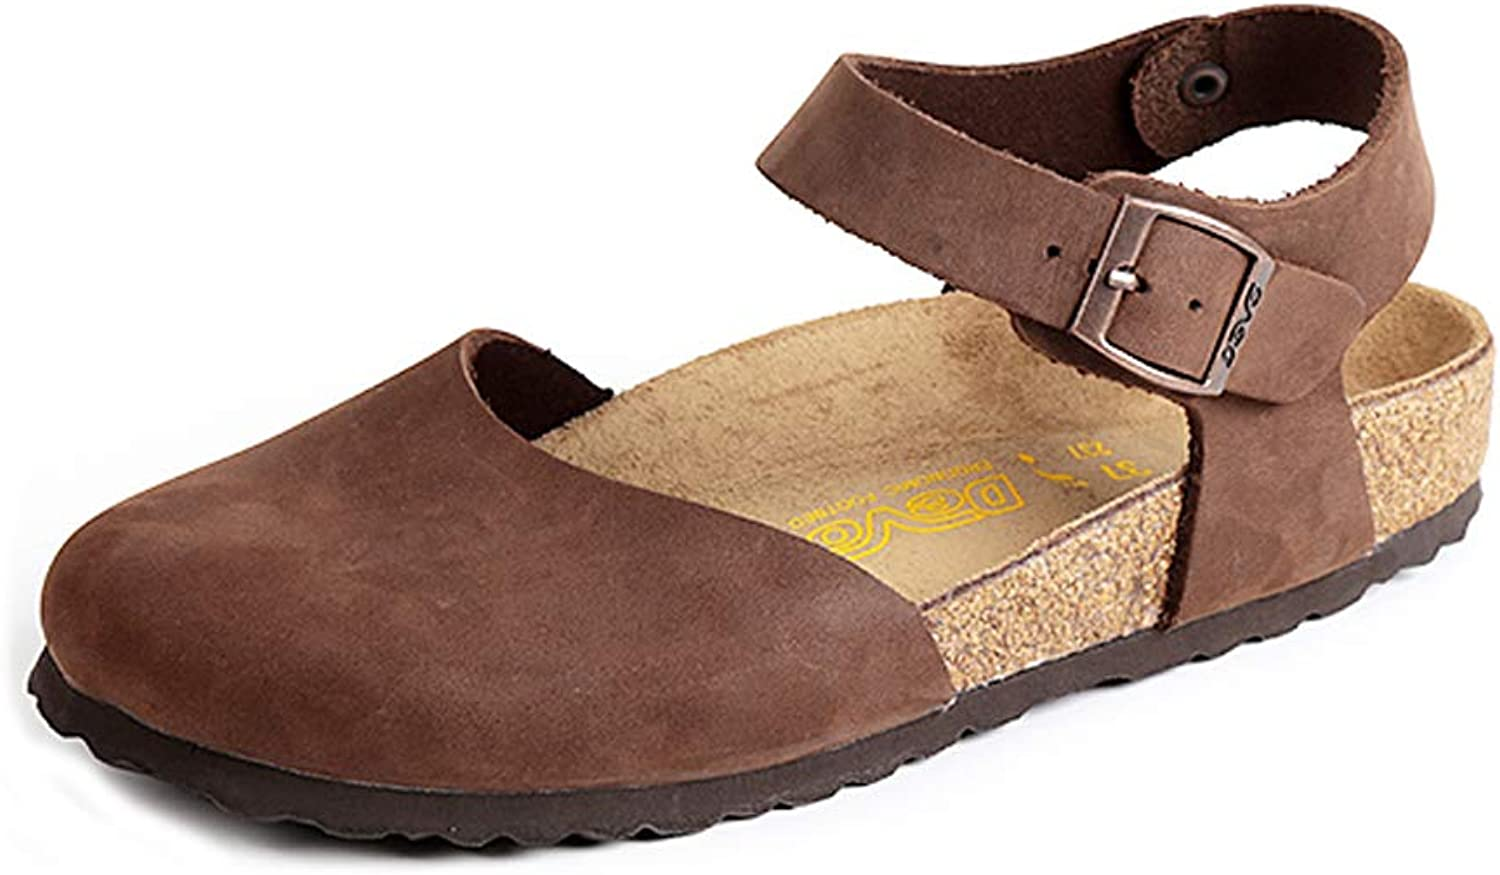 DEVO Women's Oiled Leather Cork Footed Messina Clogs Sandal Flats